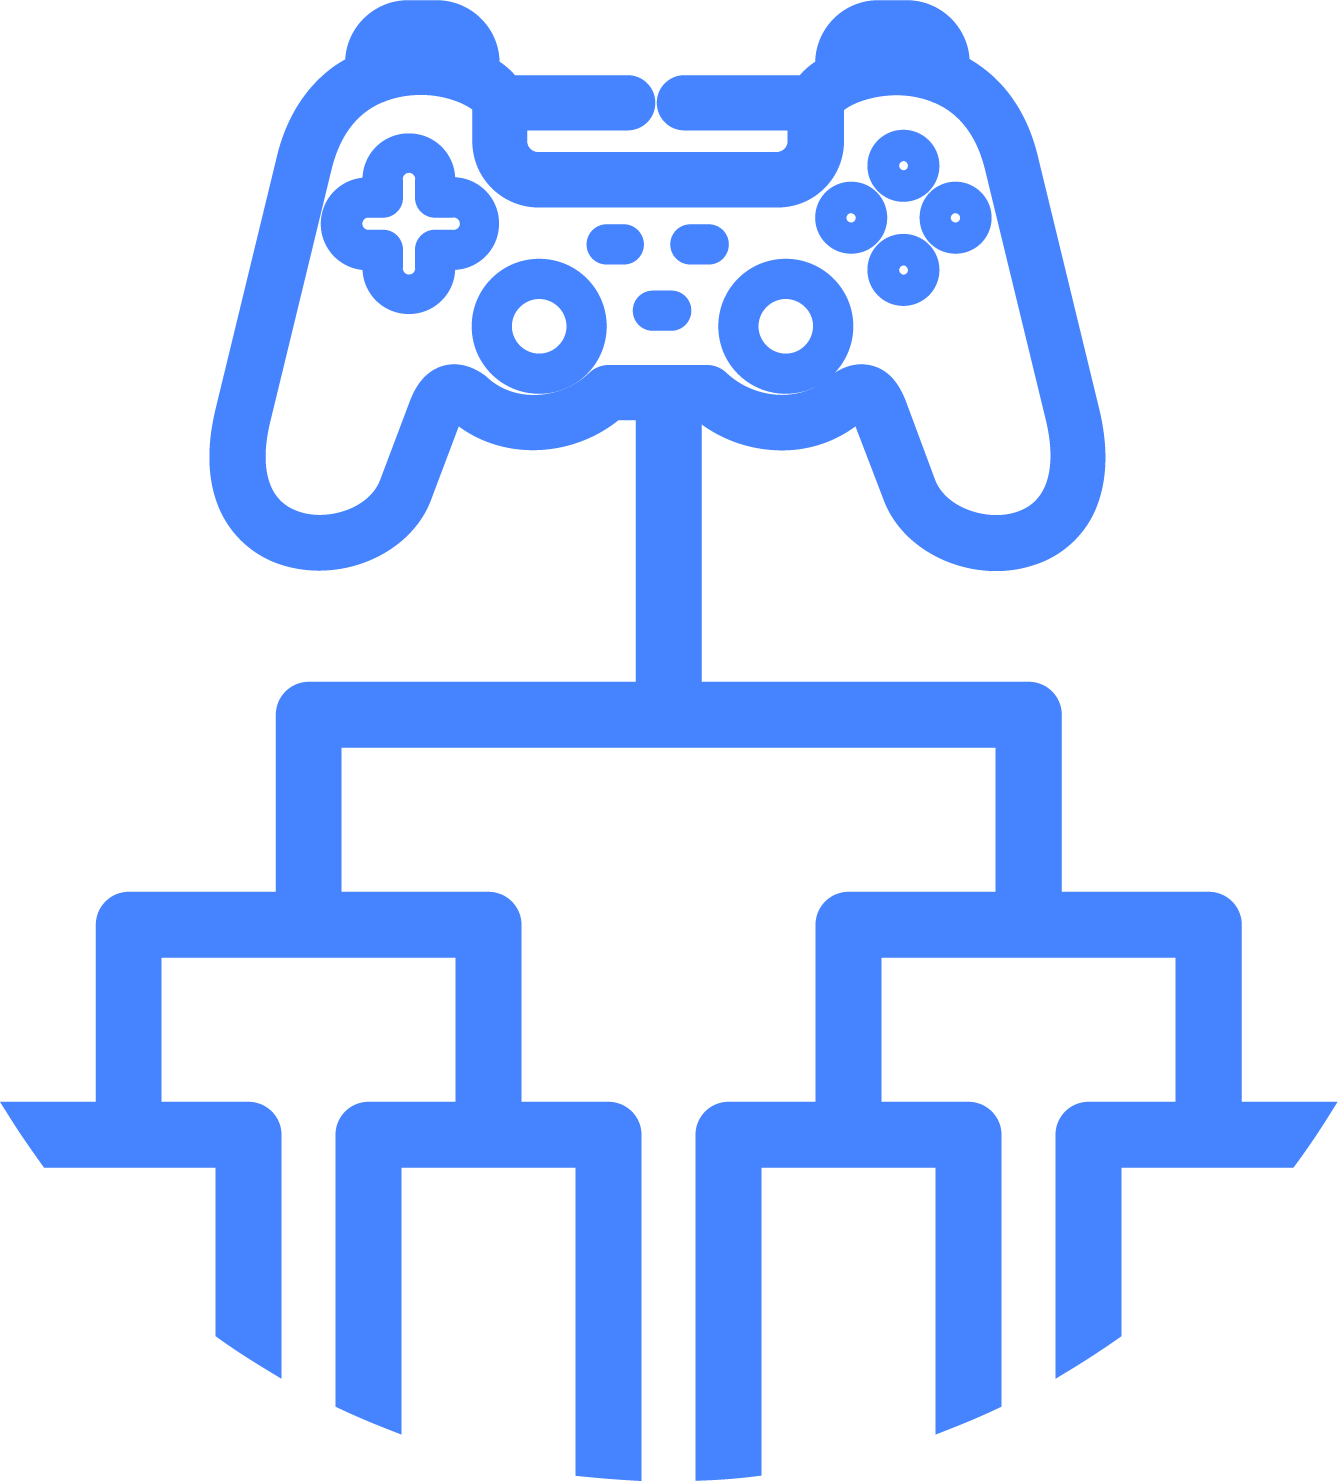 Game_Competitiveness_Icon